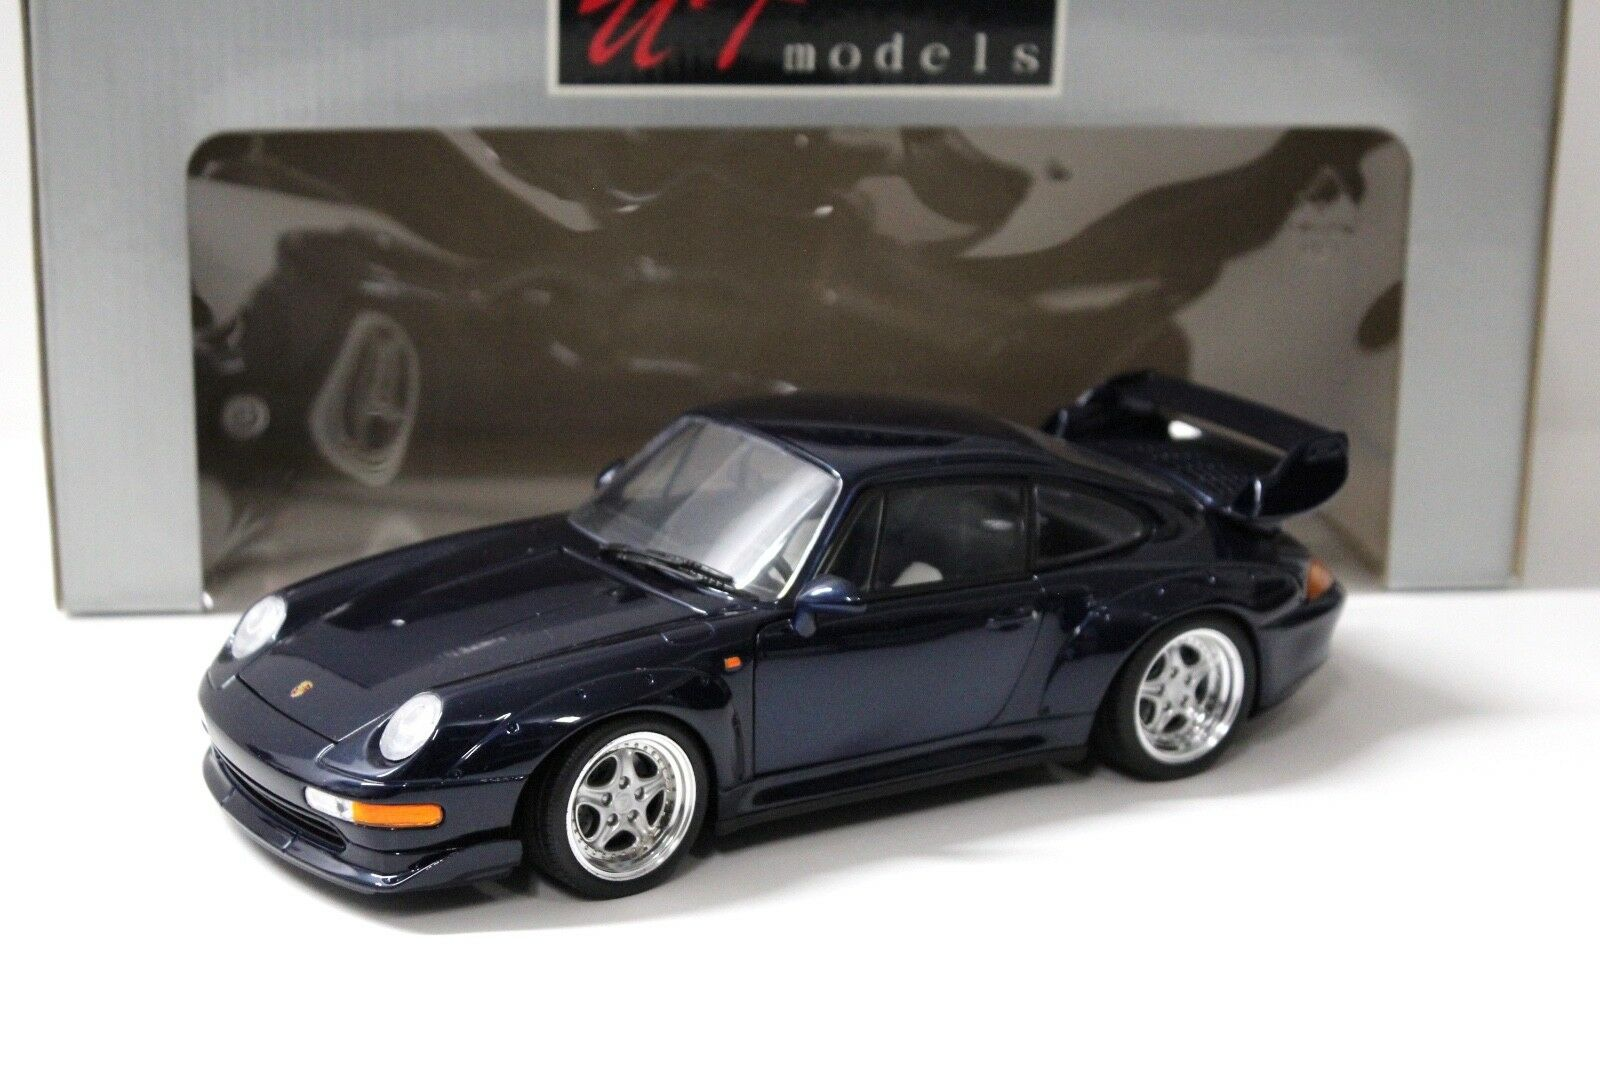 1 18 UT Models Porsche 911 993 gt2  Ocean bluee Metallic  with Premium modelcars